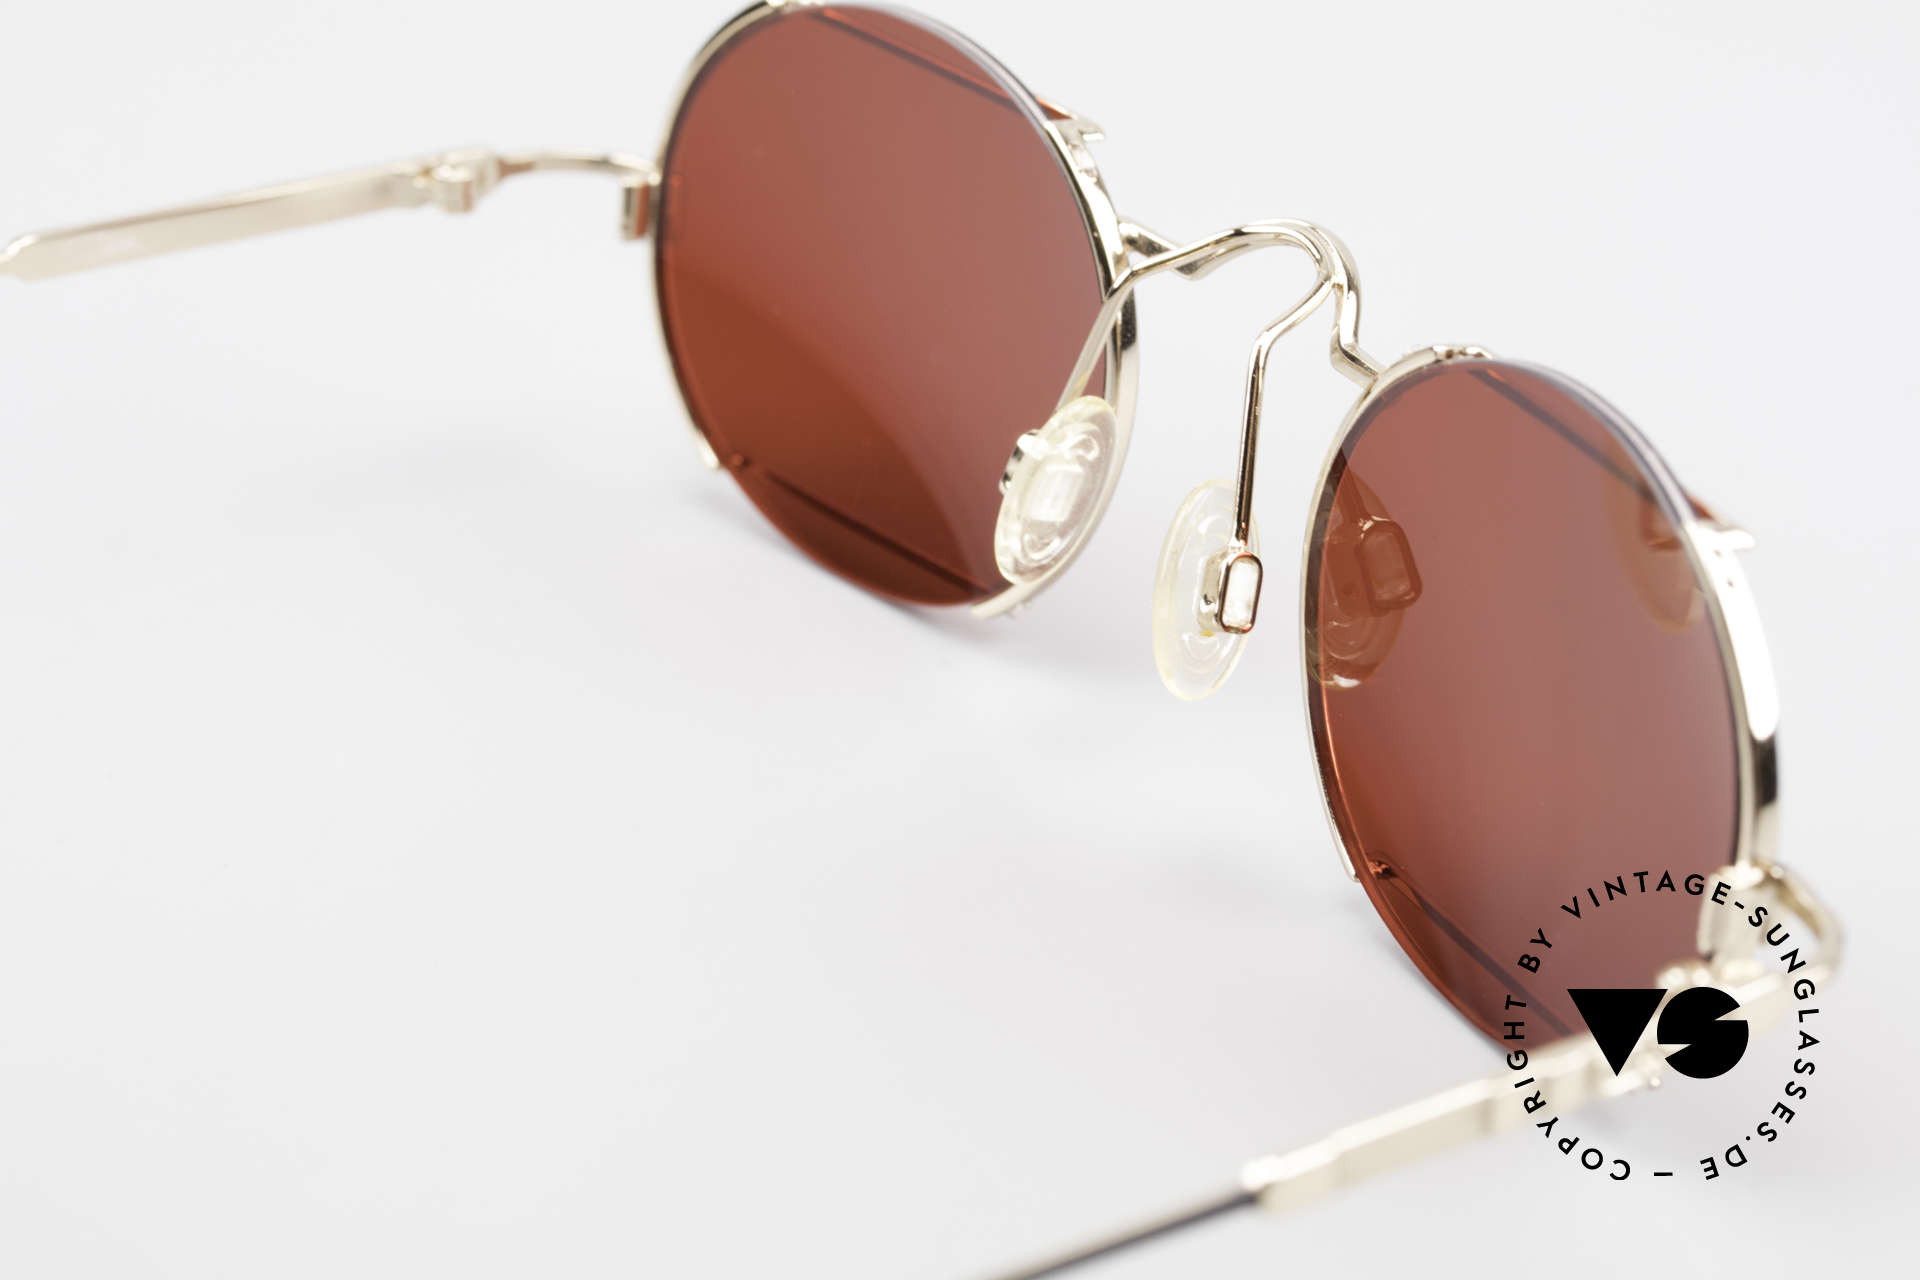 Cazal 781 Vintage Designer Sunglassses, gaudy 3D red lenses can be replaced optionally, Made for Men and Women